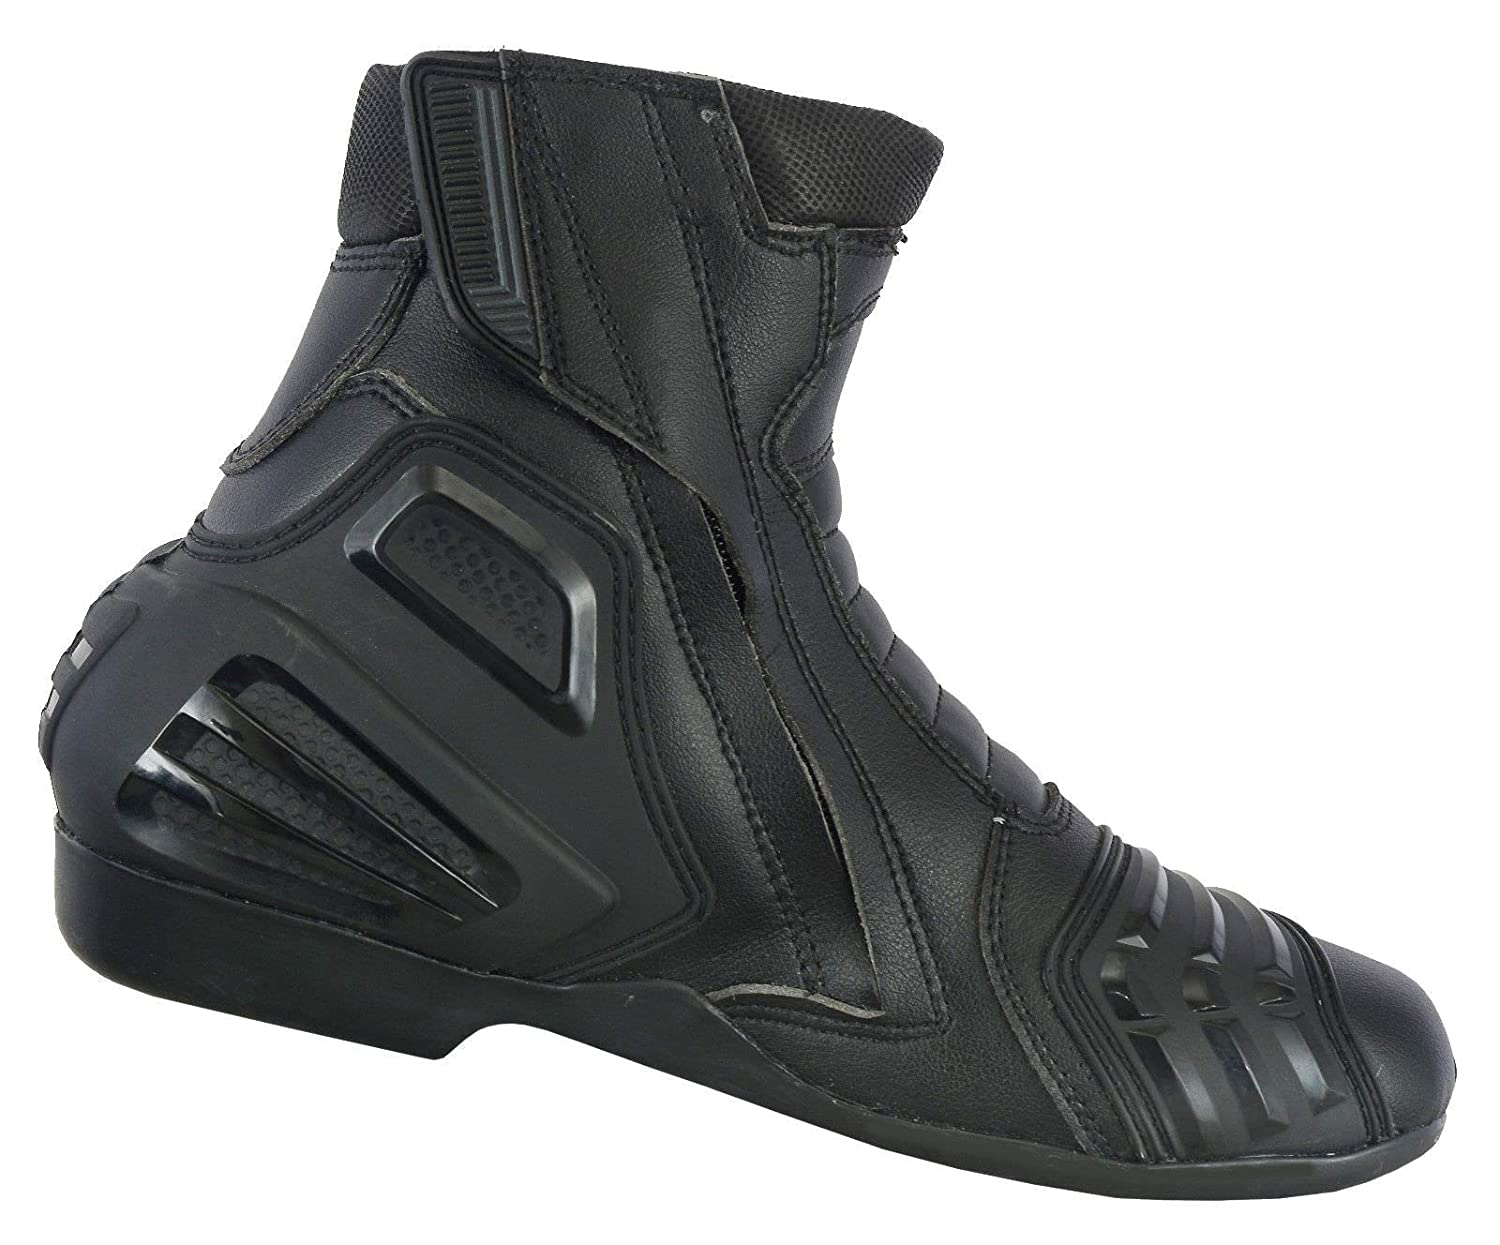 Size UK 11 Black Profirst Global Motorbike Boots Leather Shoes Racing Stylist Ankle Boot Motorcycle Off Road Touring Waterproof Armoured for Mens Boys